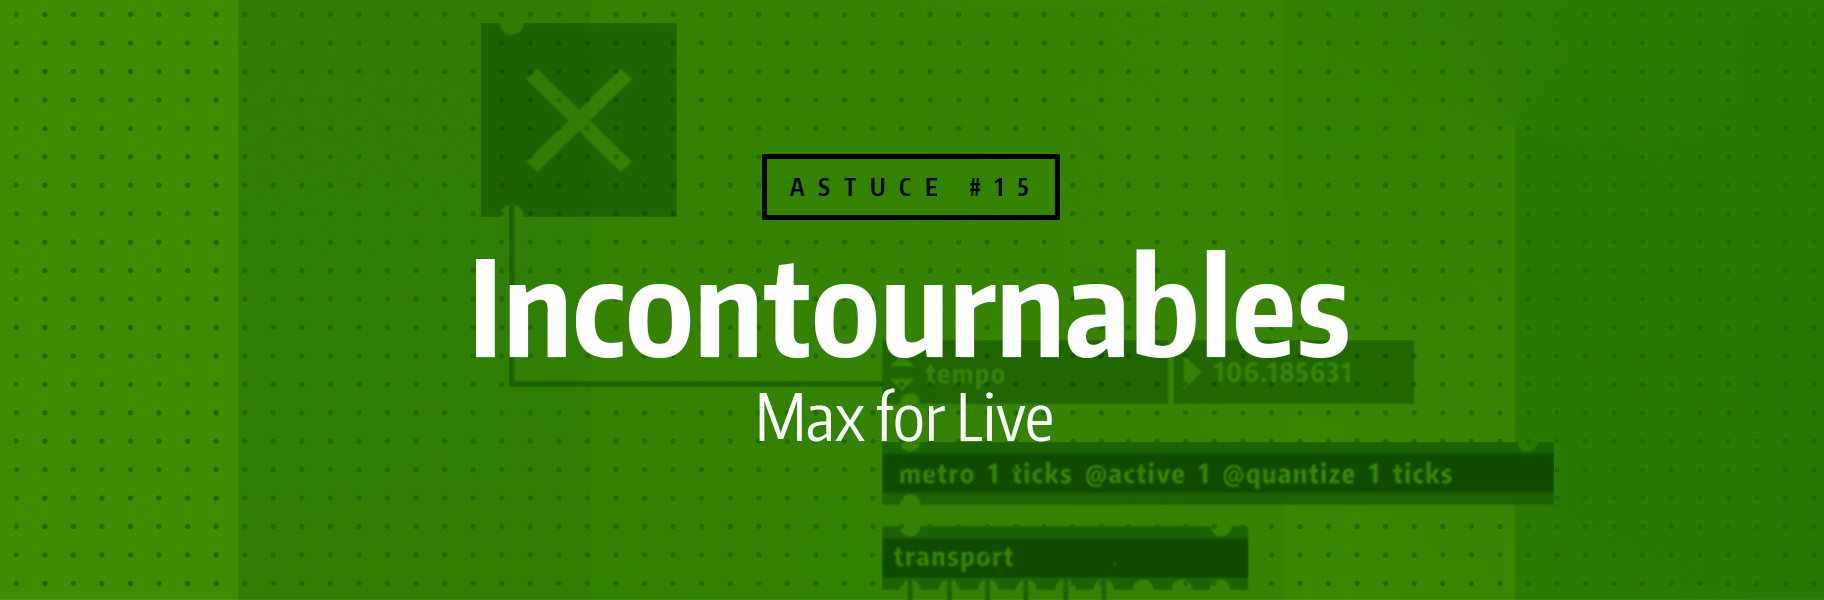 Astuce rapide #15 - Incontournables Max for Live